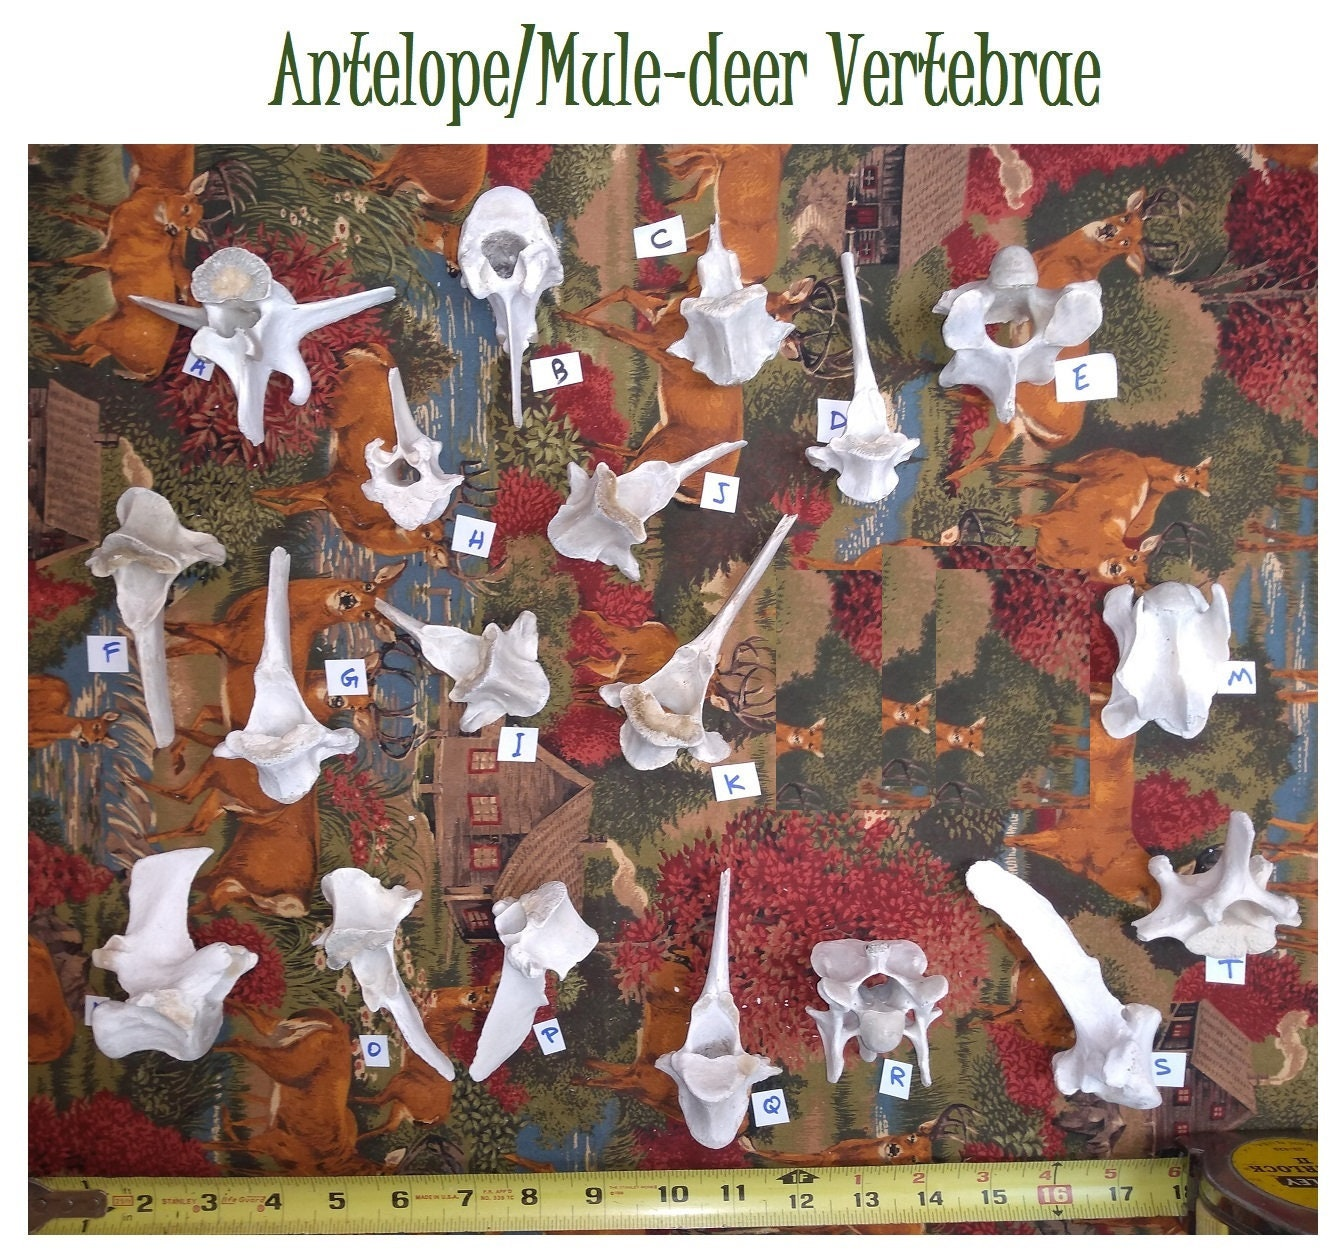 Your Choice of Assorted Wild Antelope Vertebrae FOUND (and gently simmered  CLEAN)  Some may be Mule-deer  Weathered/Natural Wild Animal Bone